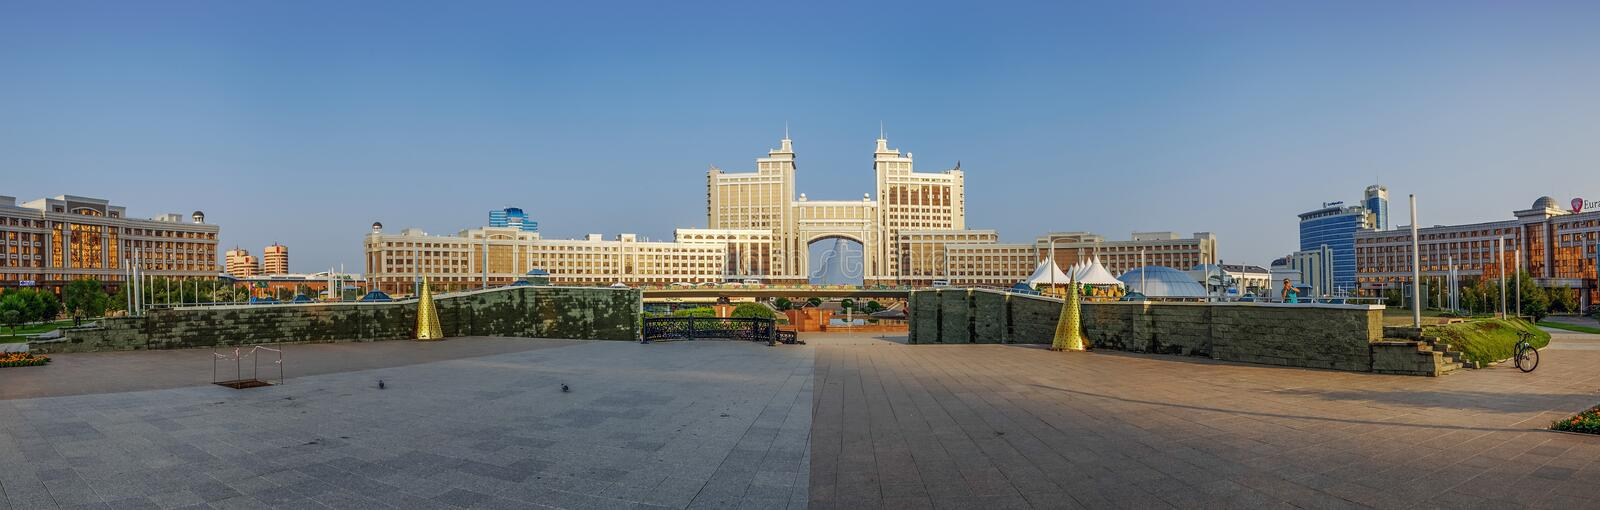 ASTANA, KAZAKHSTAN - JULY 7, 2016: Panorama of the administrative center of Astana in the morning light stock photo